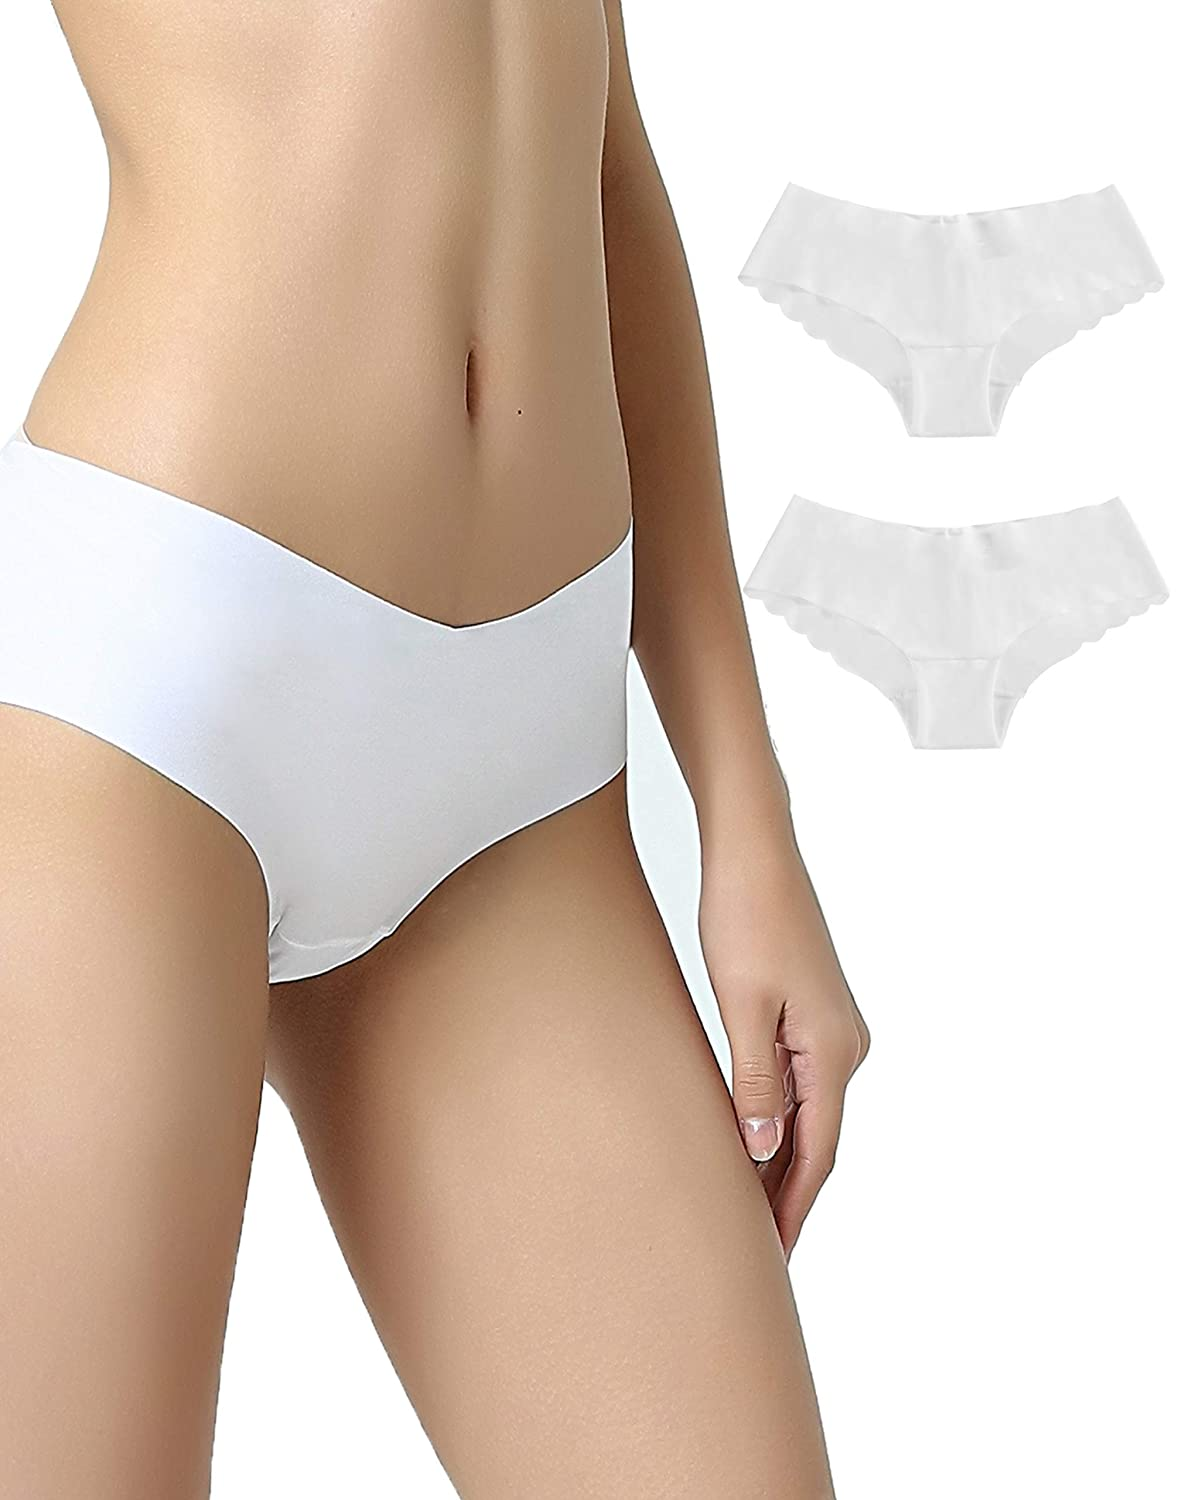 VANEVER Women's No VPL Knickers, 2 Pack, Low Waist Invisible Hipsters, Smooth No Visible Panty Line Underwear